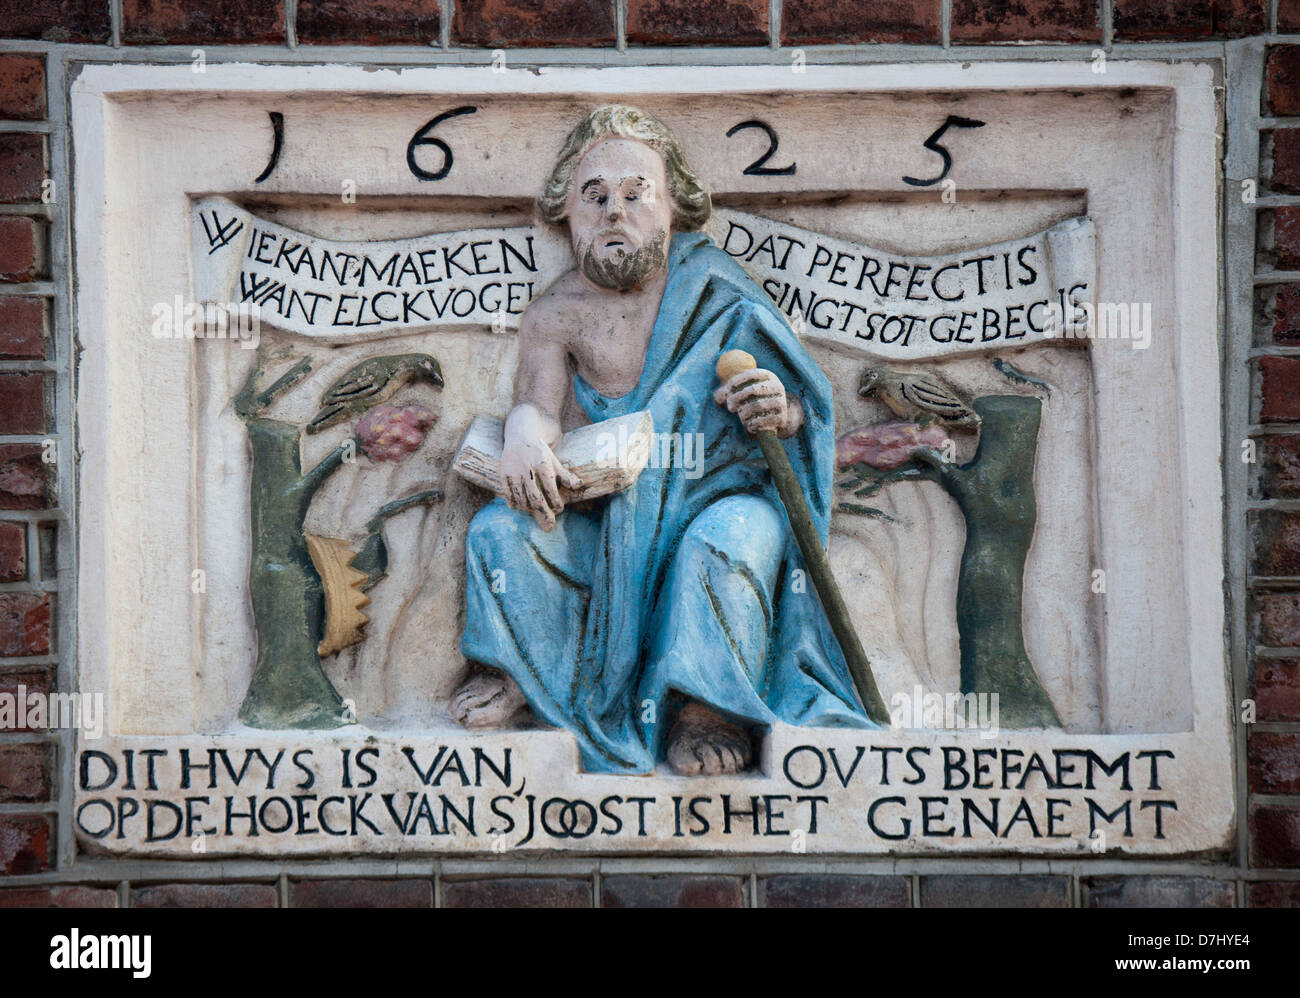 wall decoration of old traders houses in Dordrecht, netherlands - Stock Image